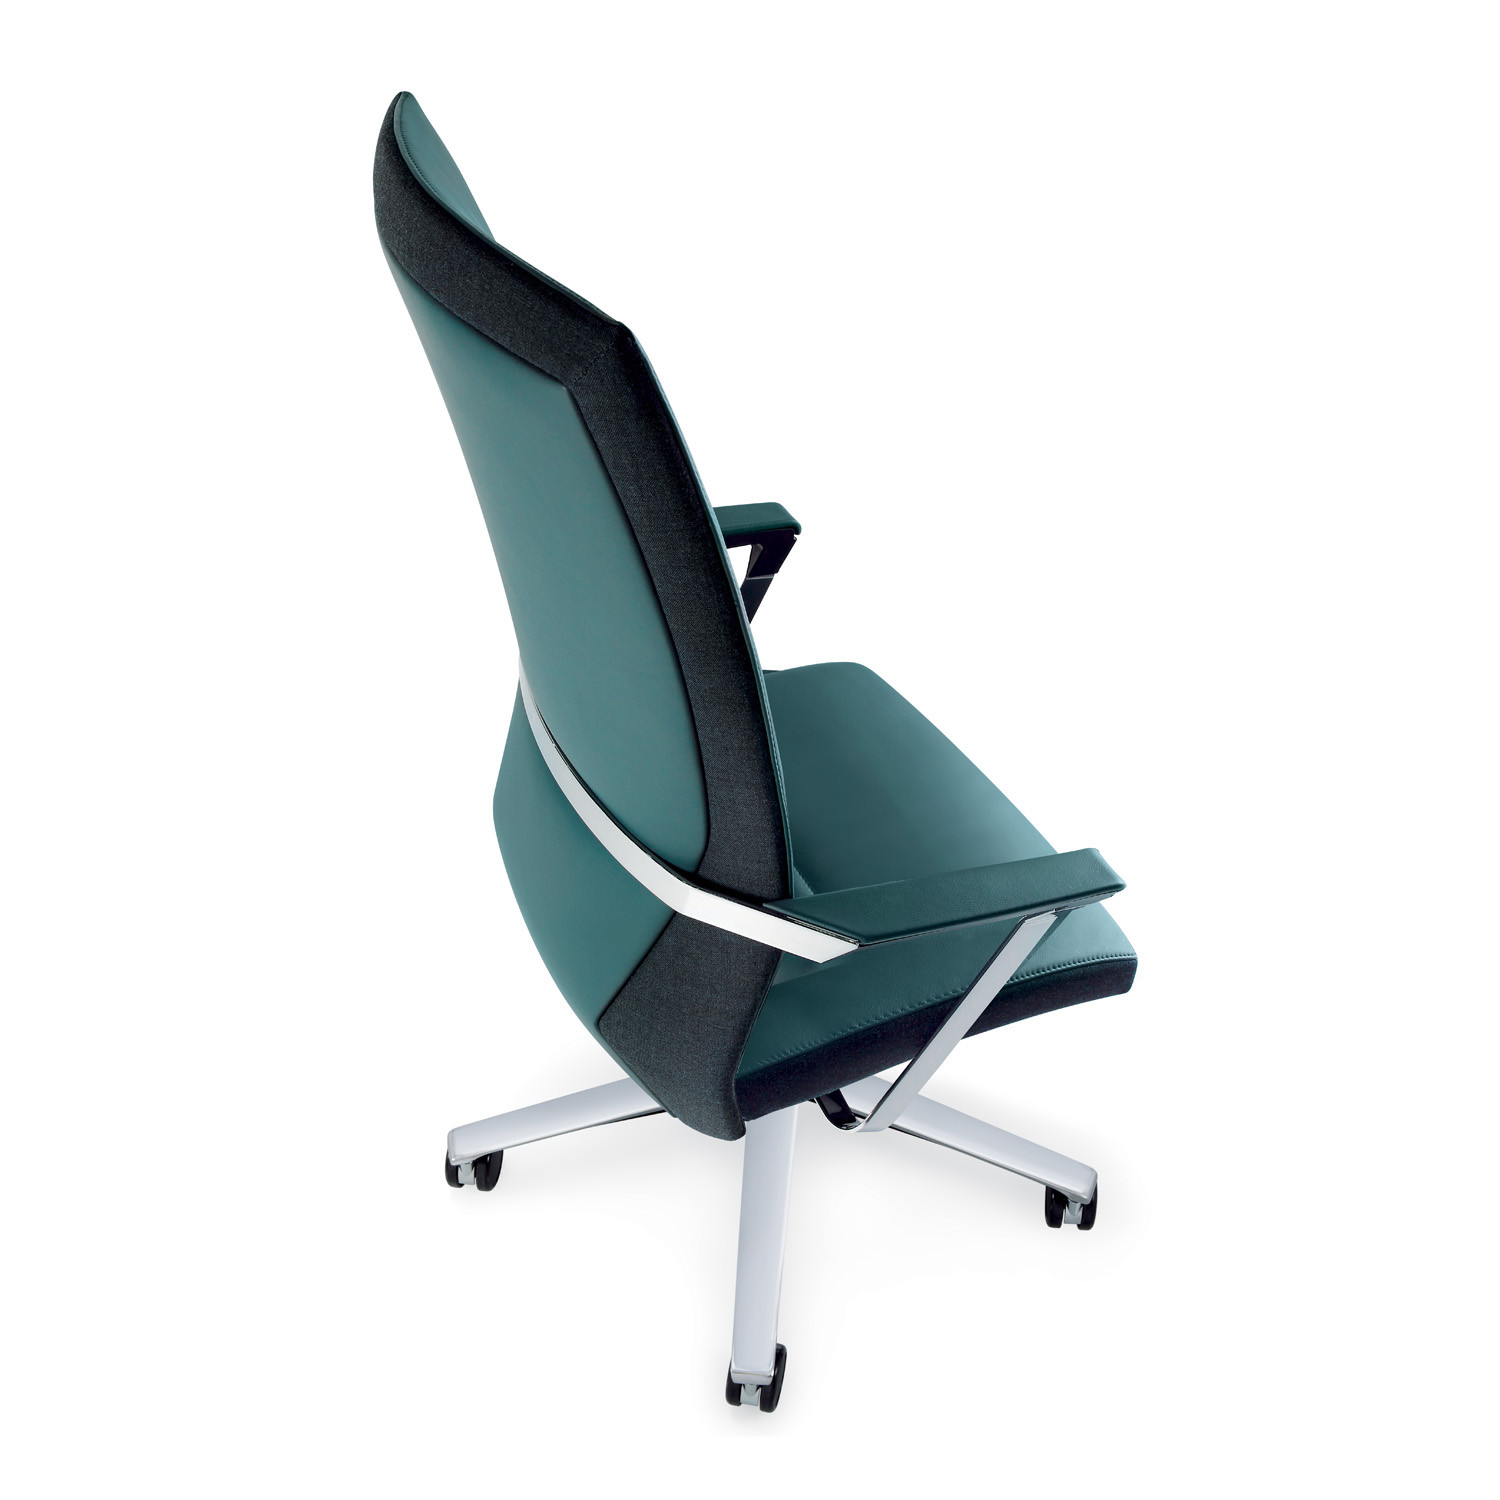 DucaRE Office Chair Rear View